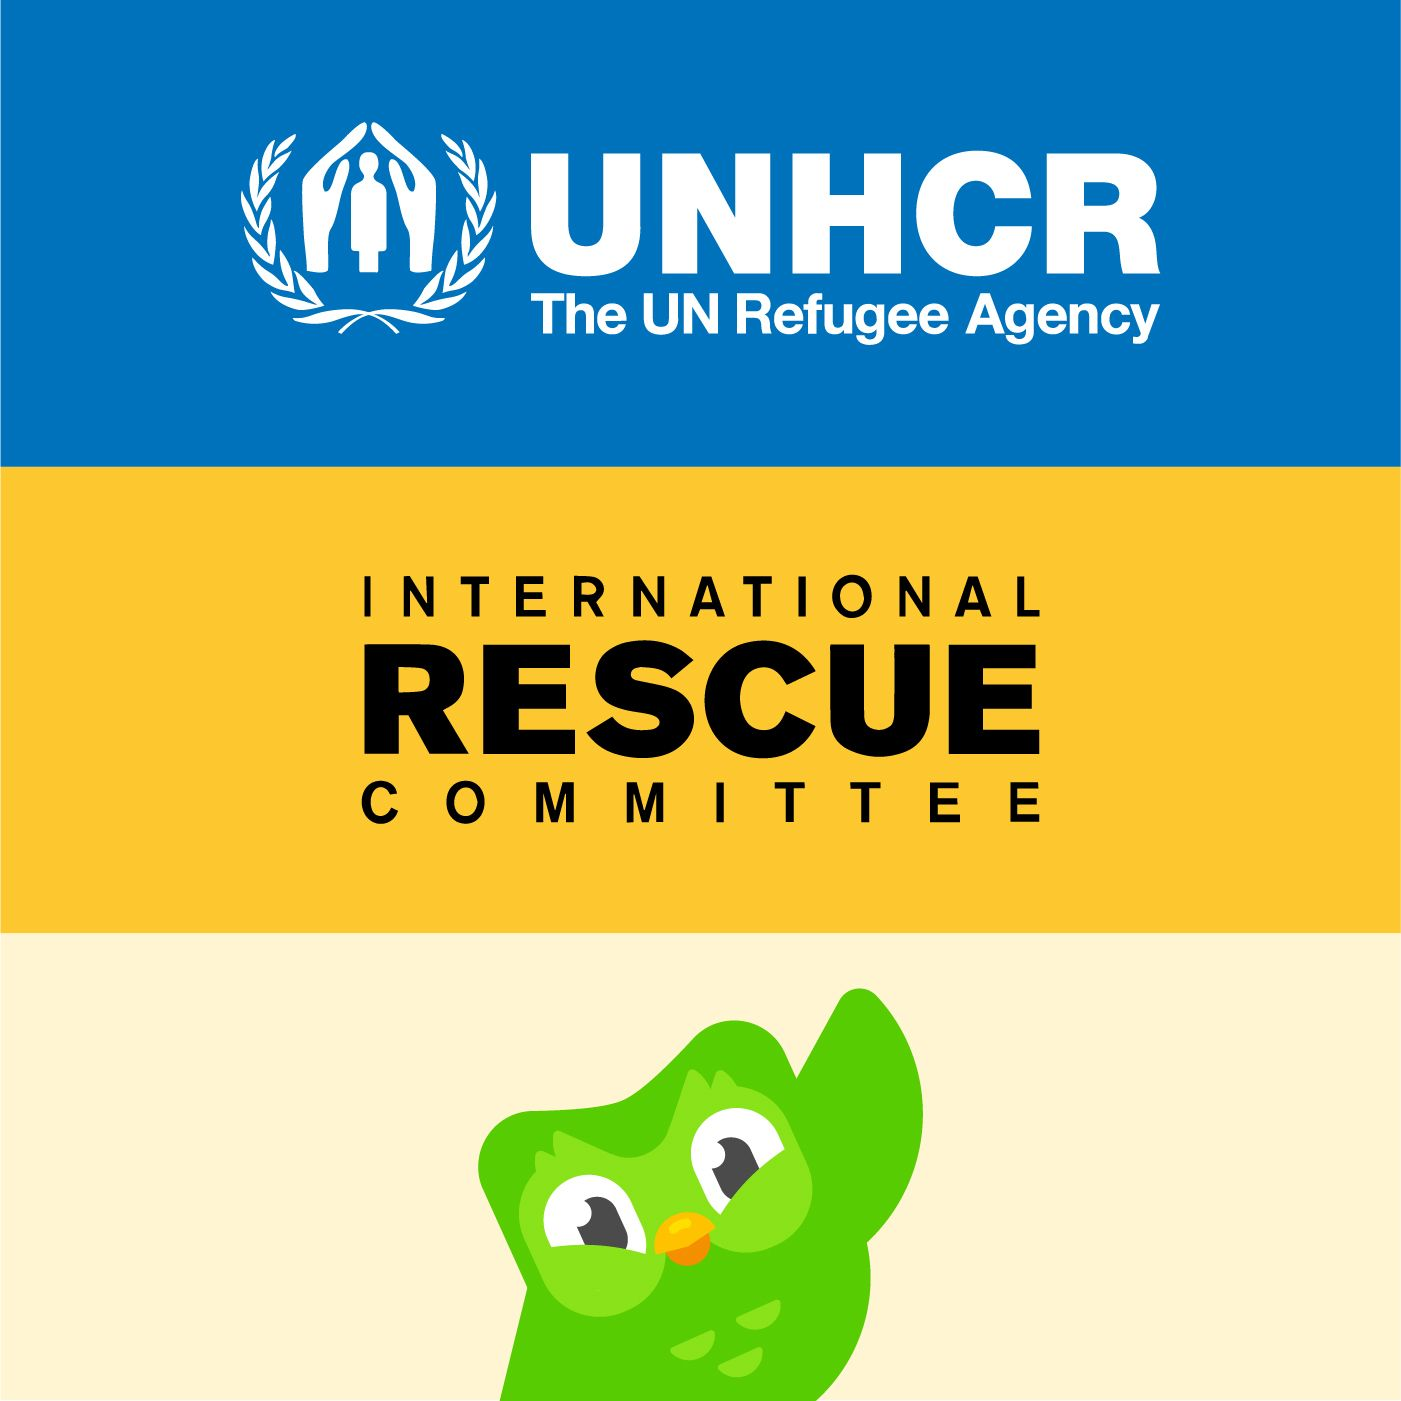 Our commitments to helping refugees